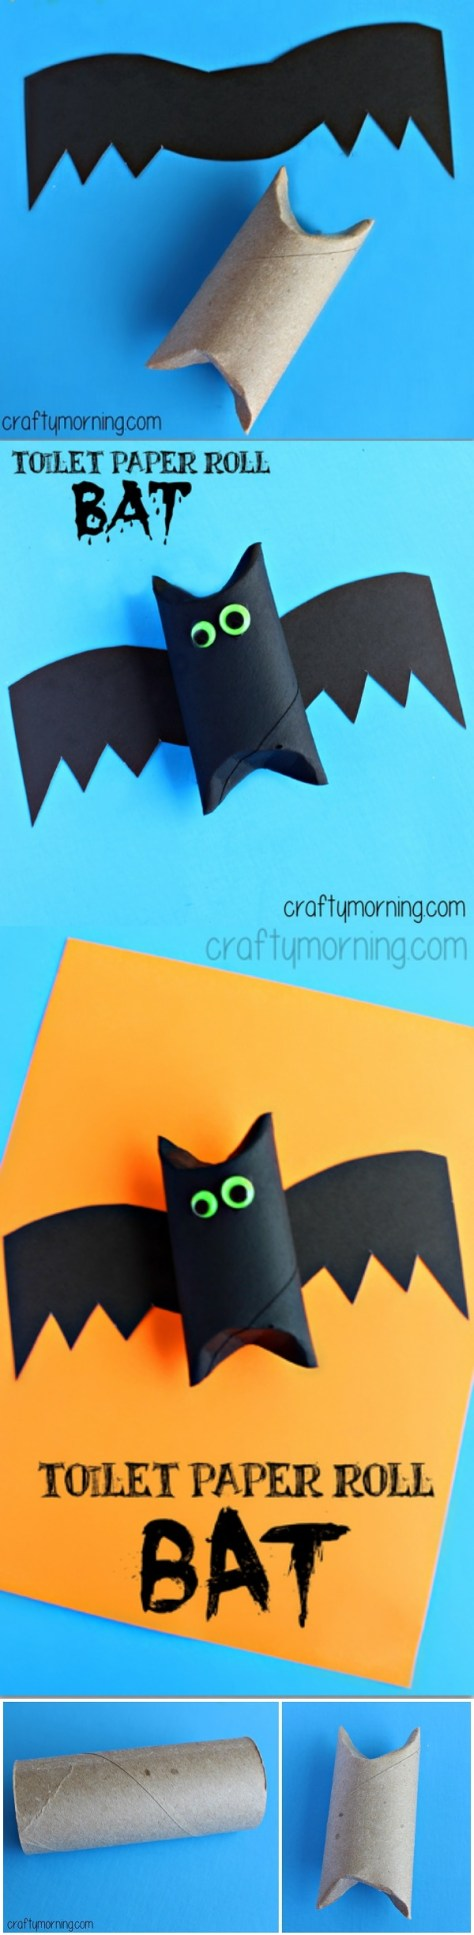 5. Toilet Paper Roll Bat Craft for Kids